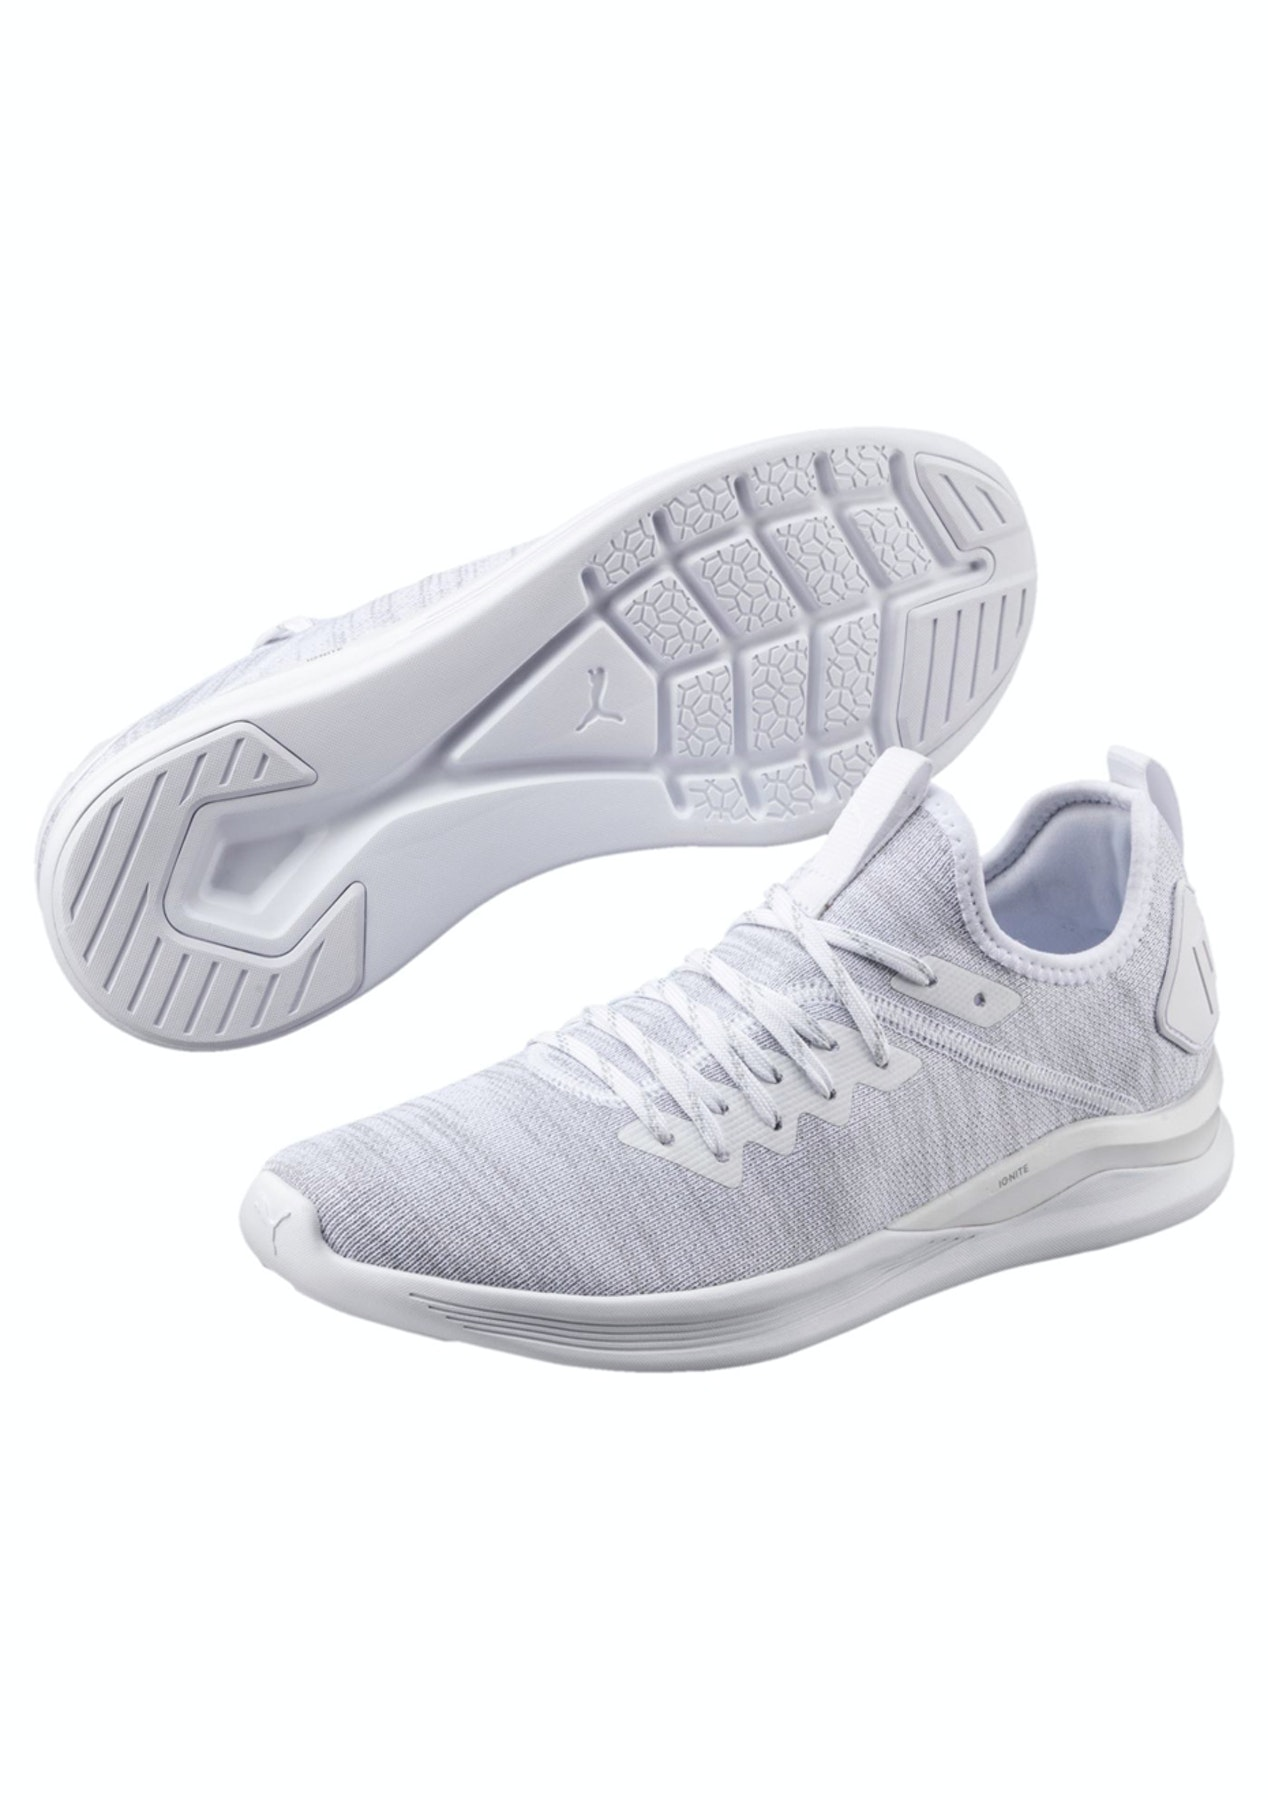 1e714ff34df Puma Mens - Ignite Flash Evoknit - White